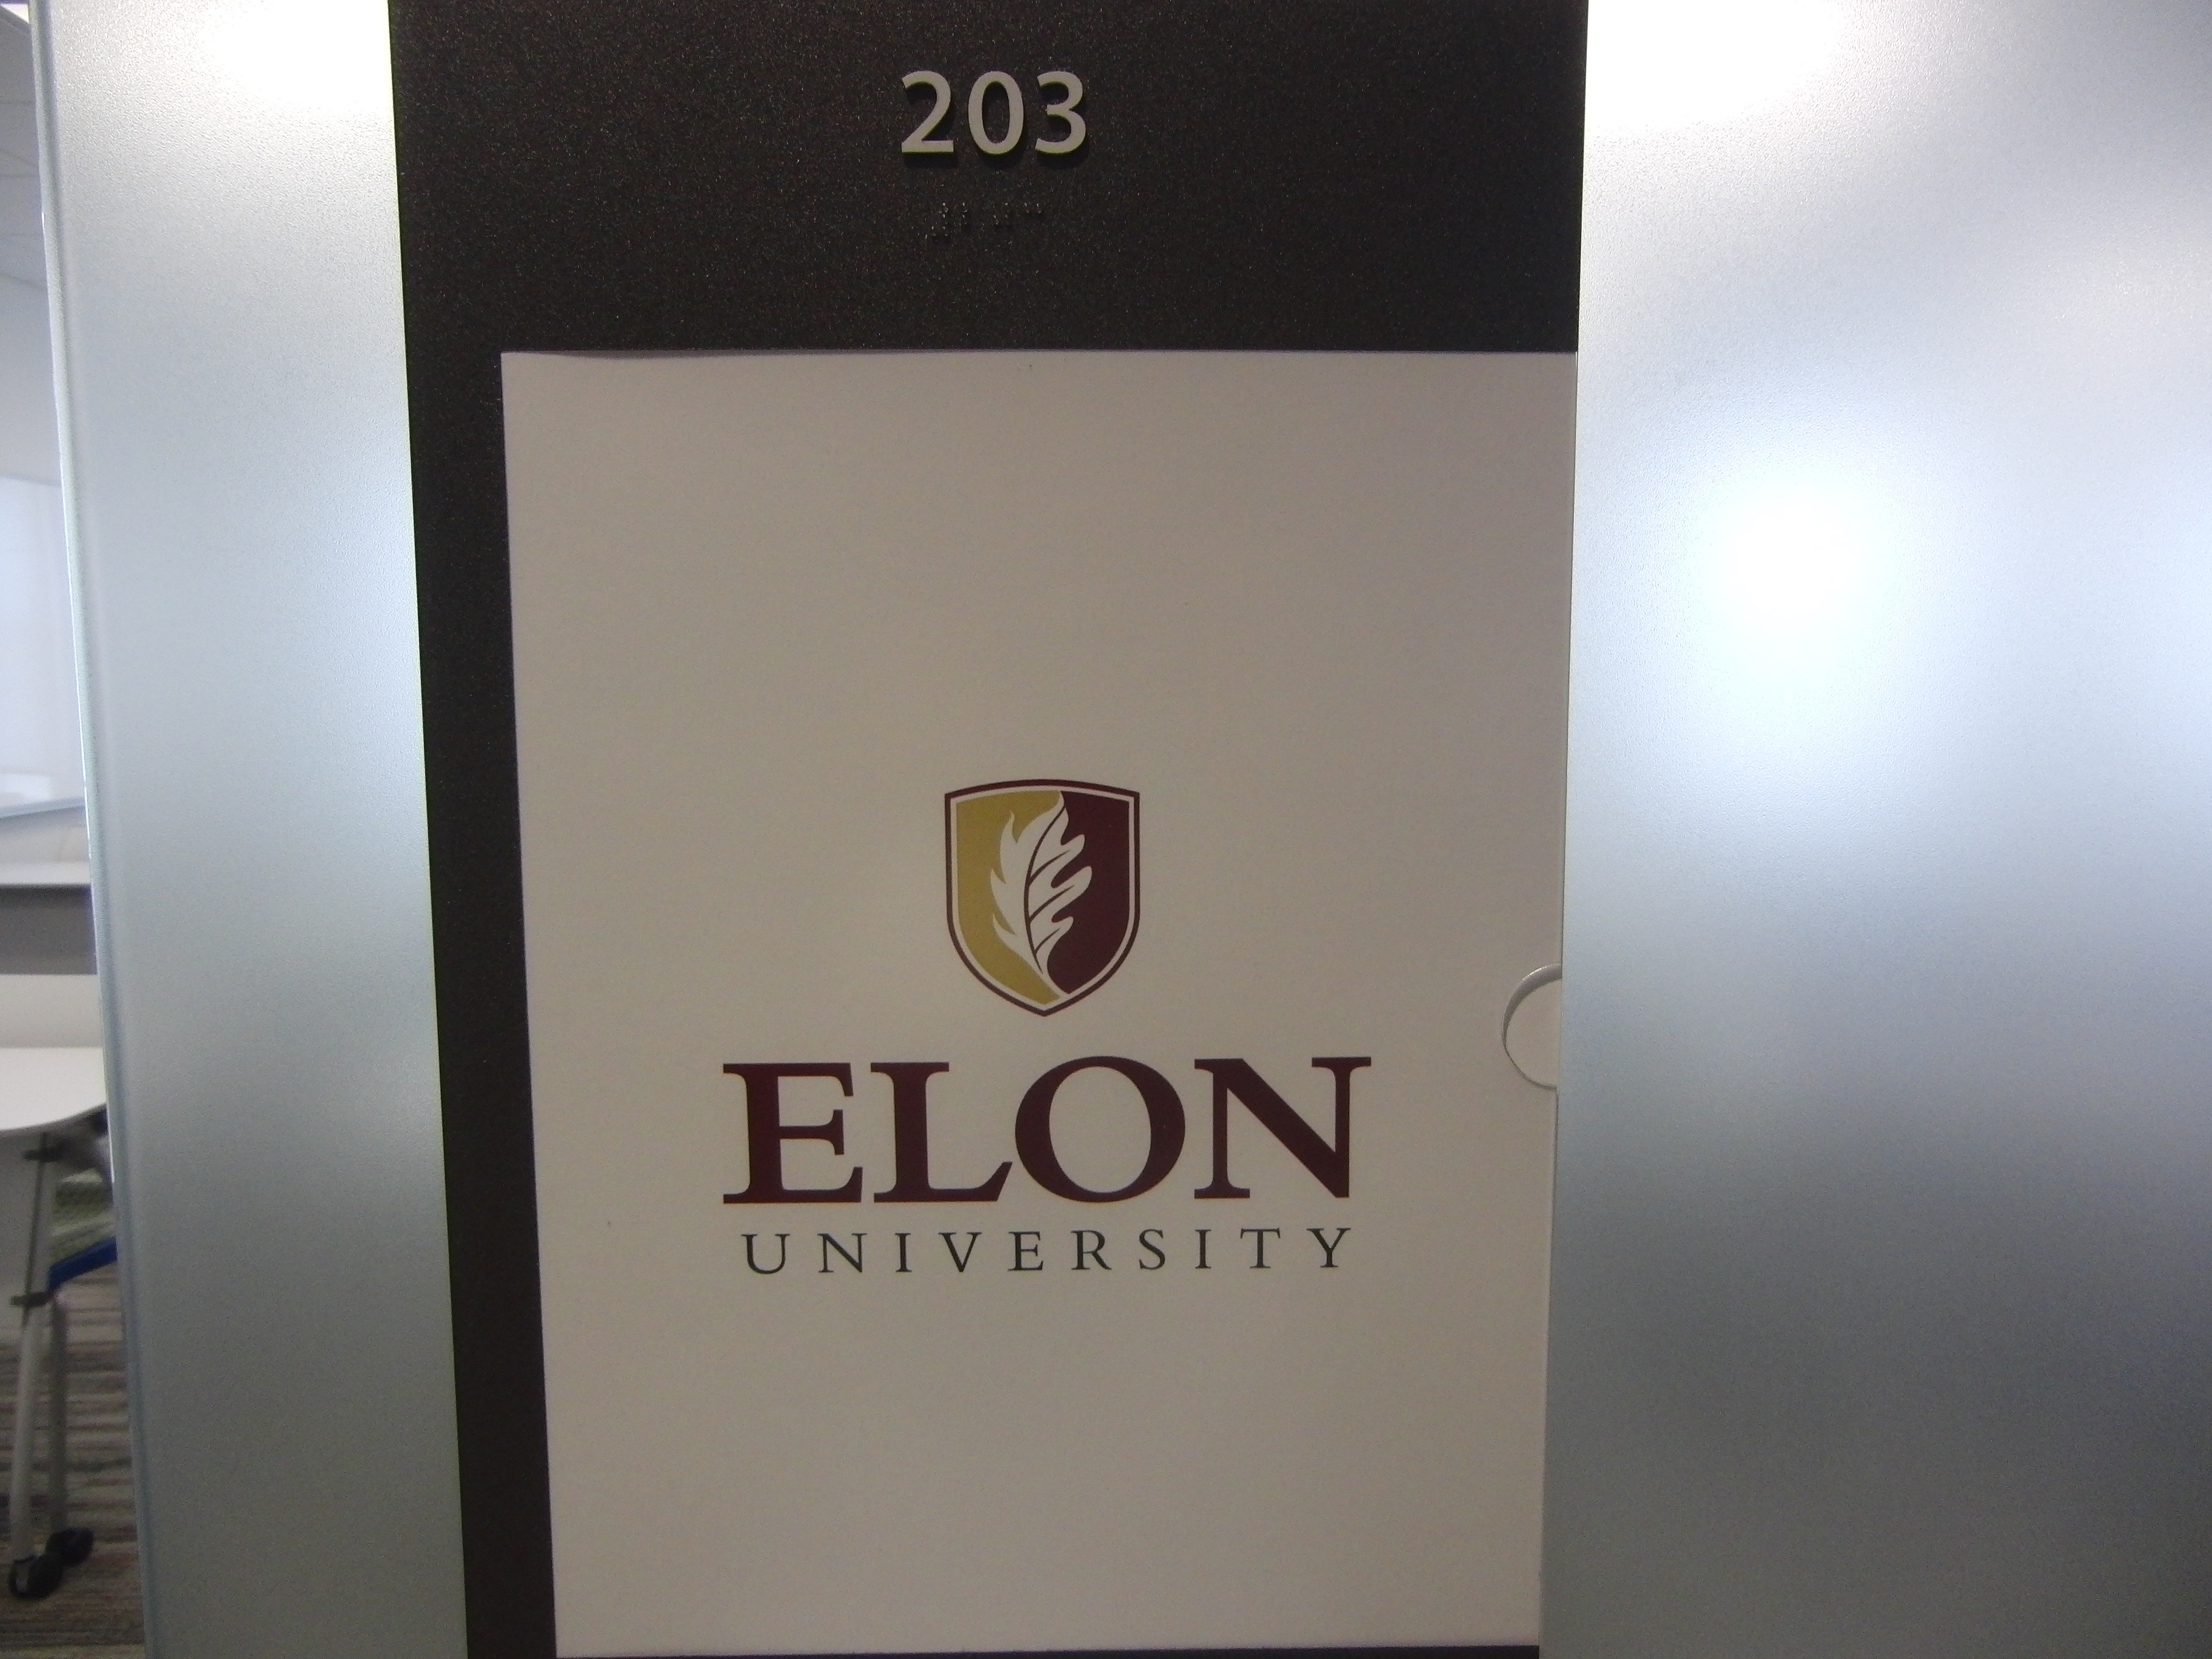 Photo of the Long 203 room number with classroom schedule listed below